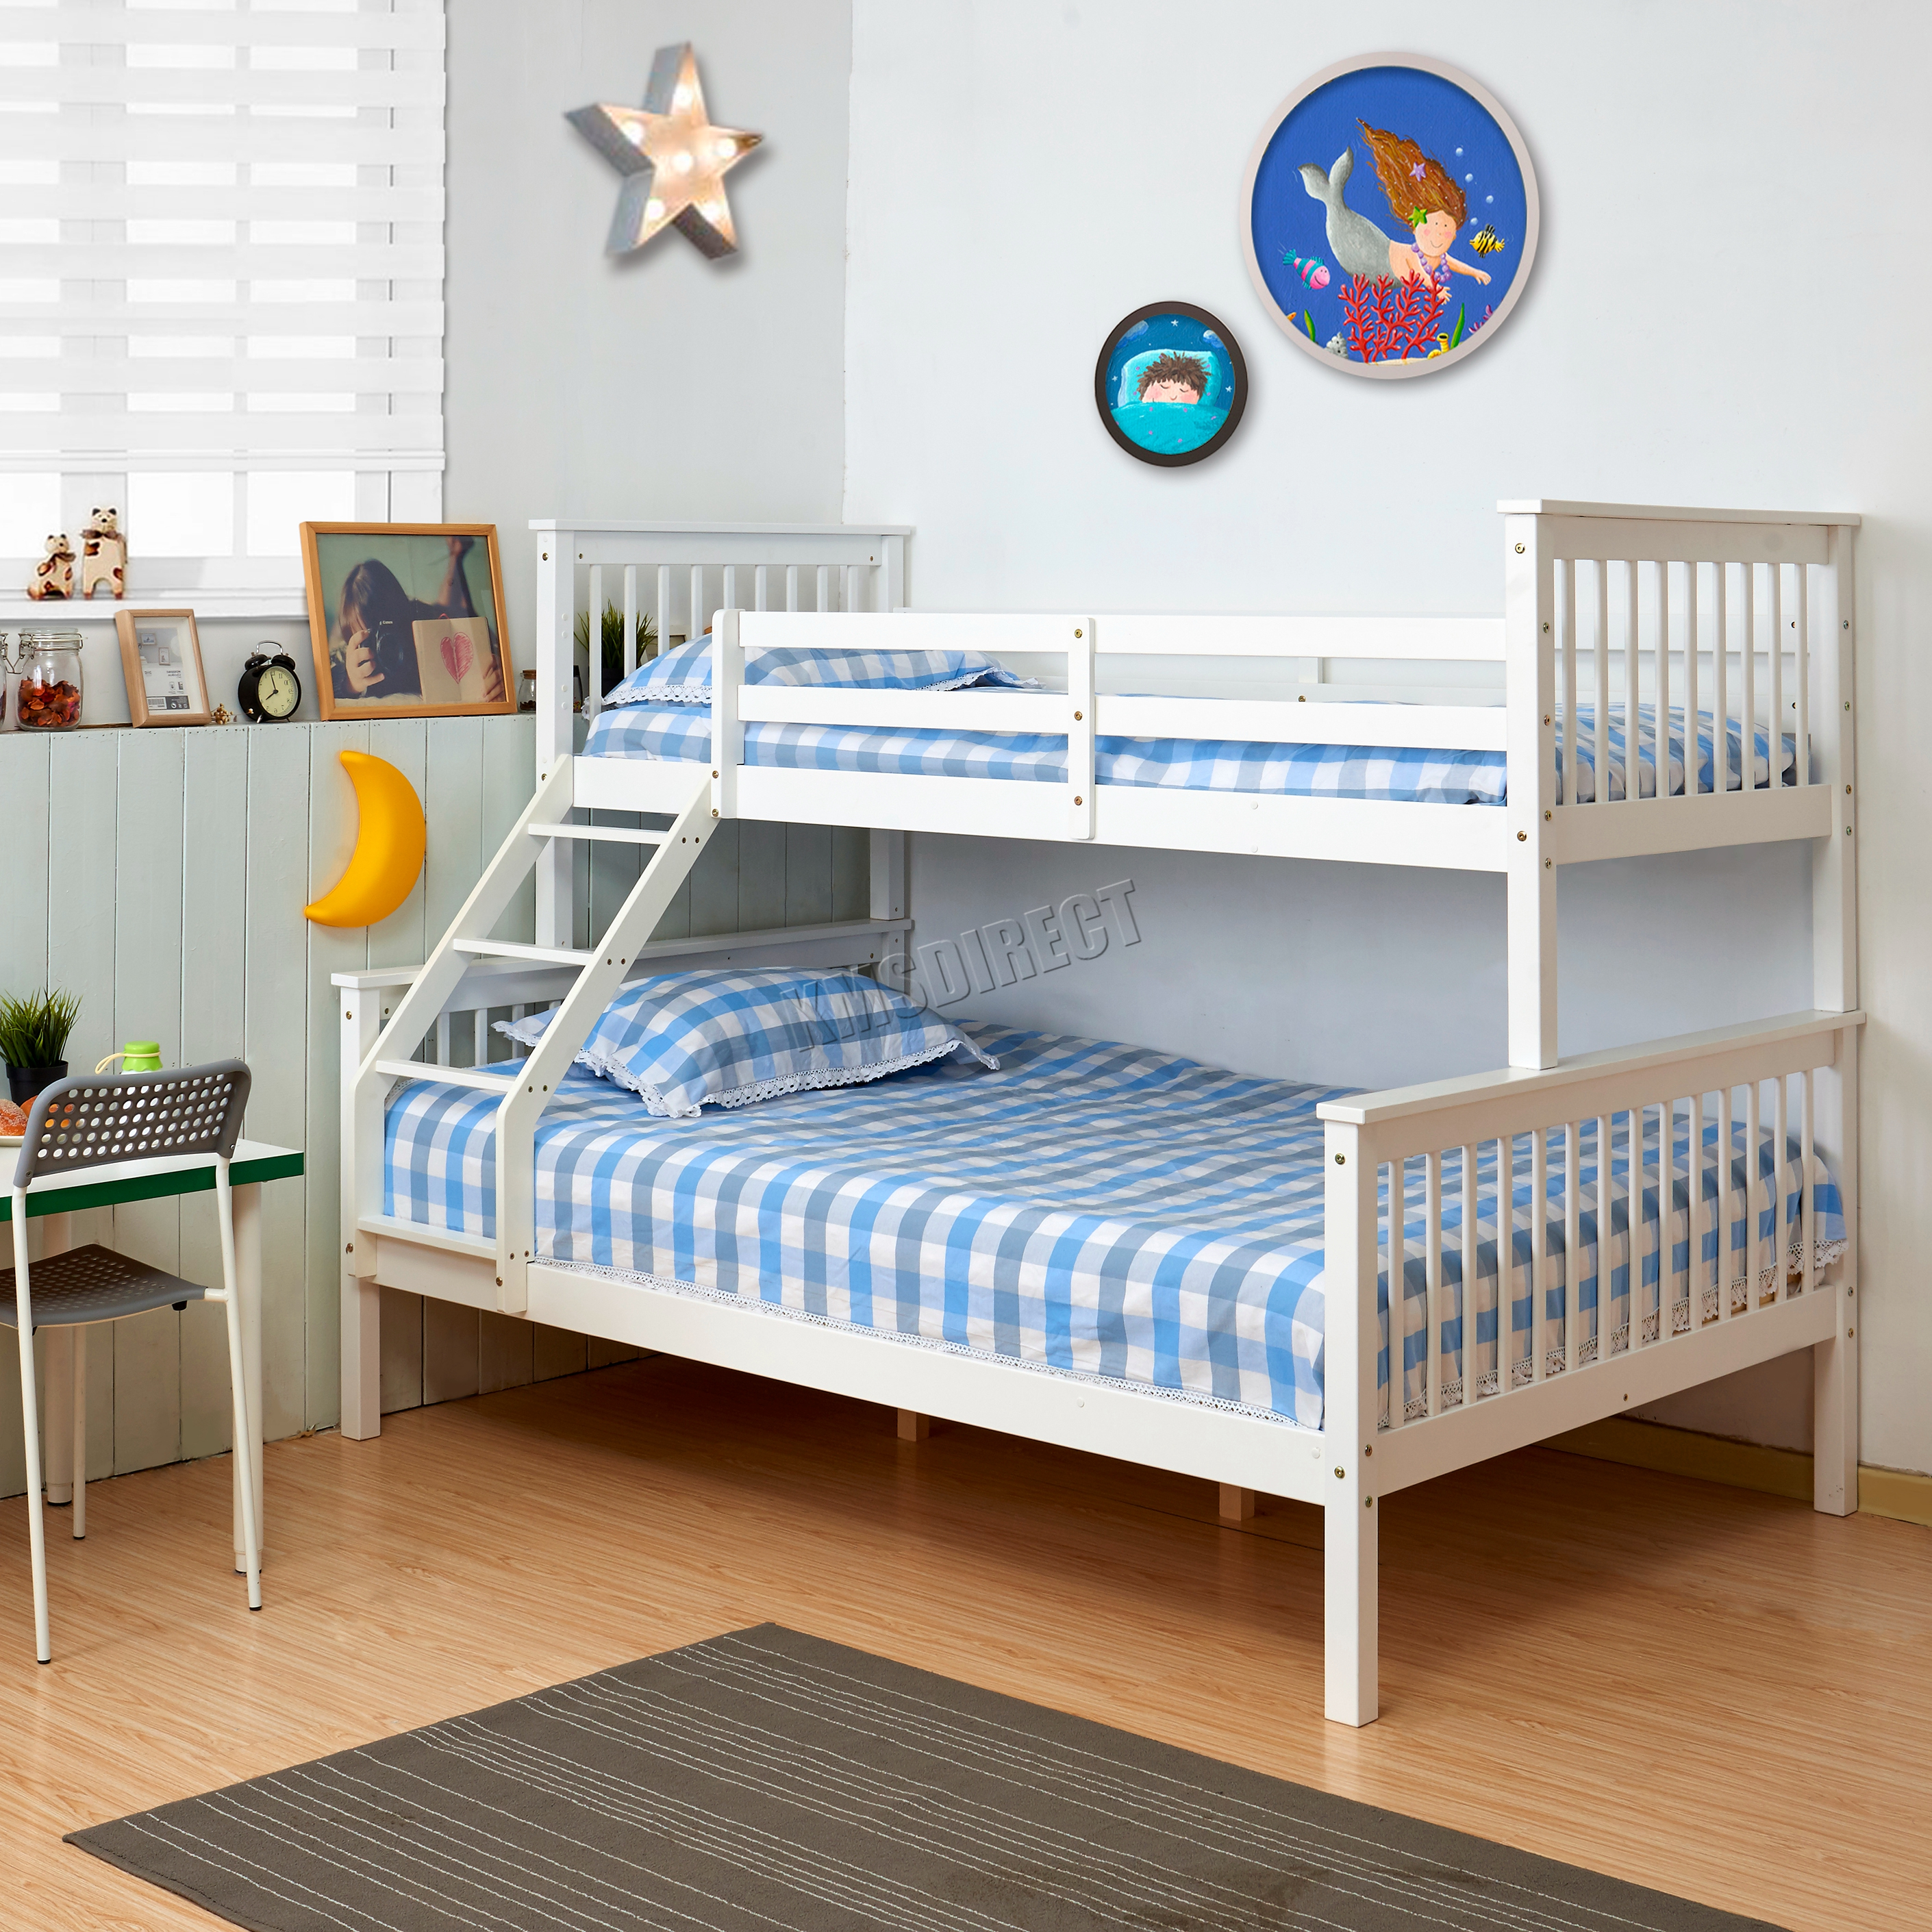 Foxhunter bunk bed wooden frame children kids triple for Bunk bed frame with mattress